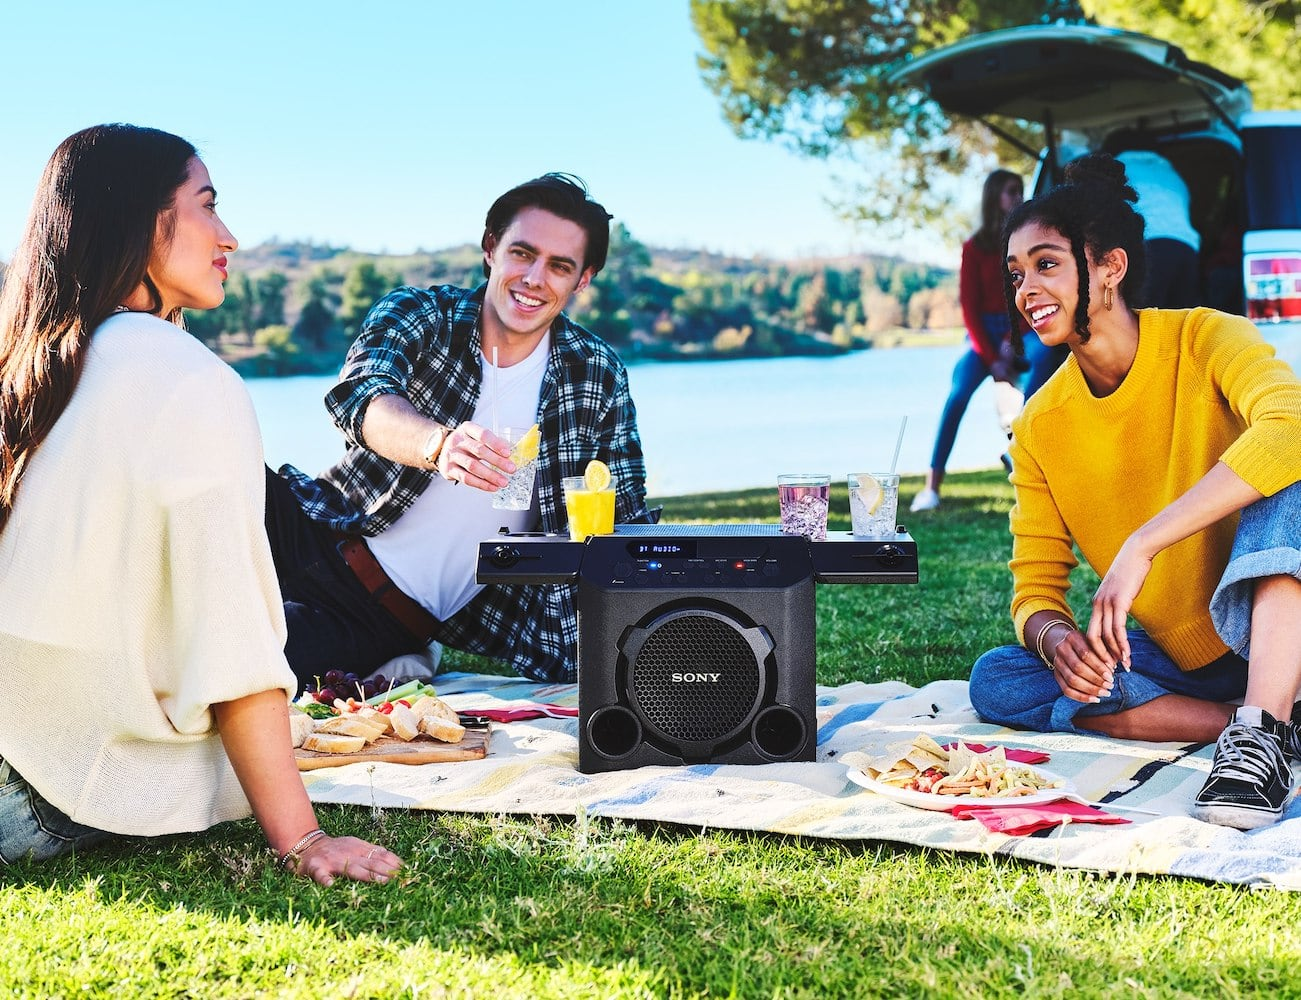 Sony GTK-PG10 Outdoor Wireless Party Speaker takes the fun with you